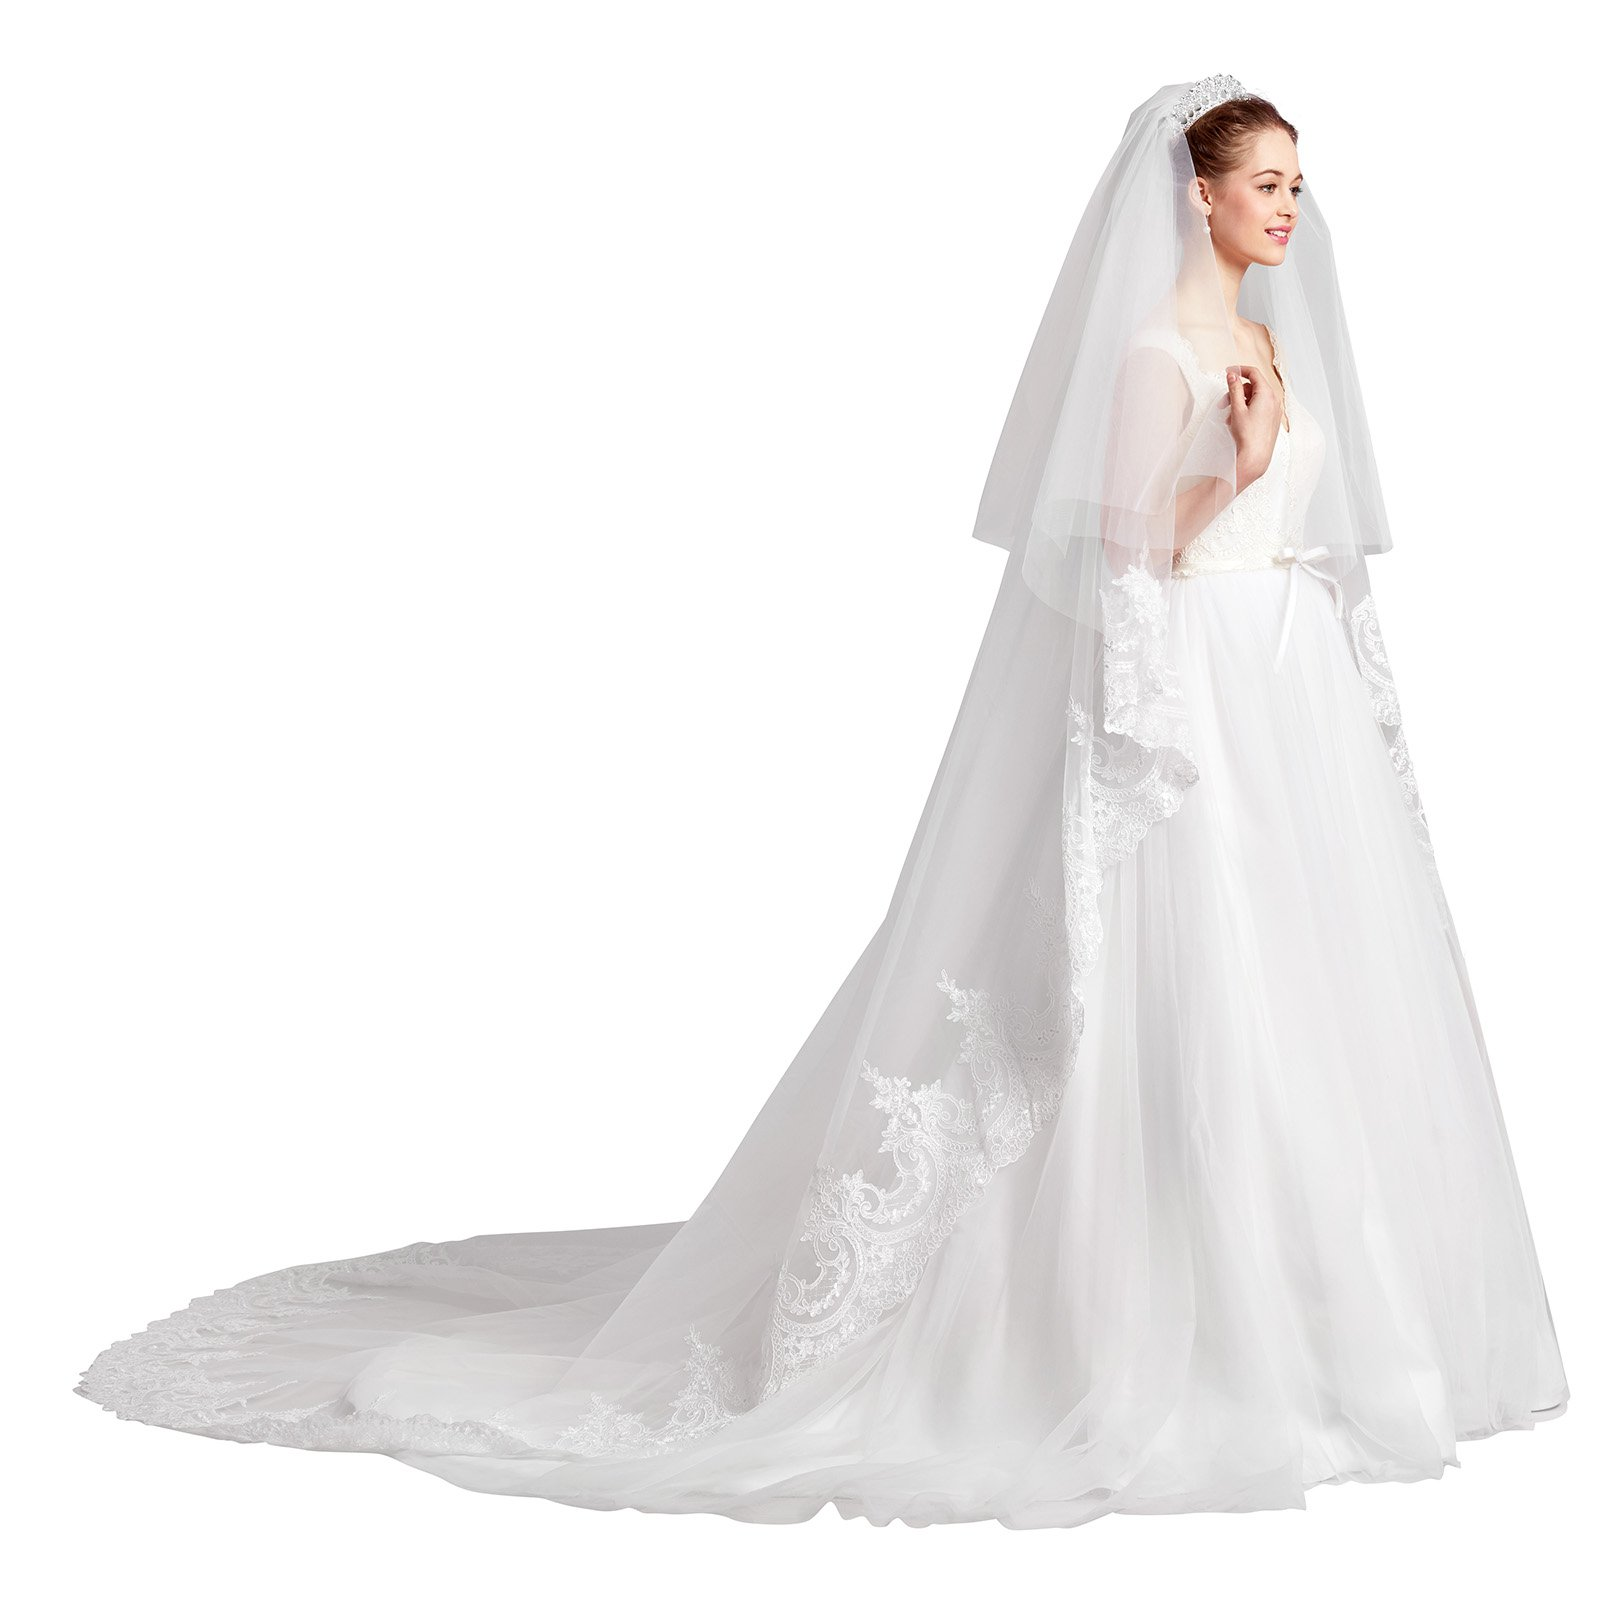 AW 2 Layers Ivory Cathedral Wedding Veil Lace Applique Edged Tulle Bridal Veil with Metal Comb 133''